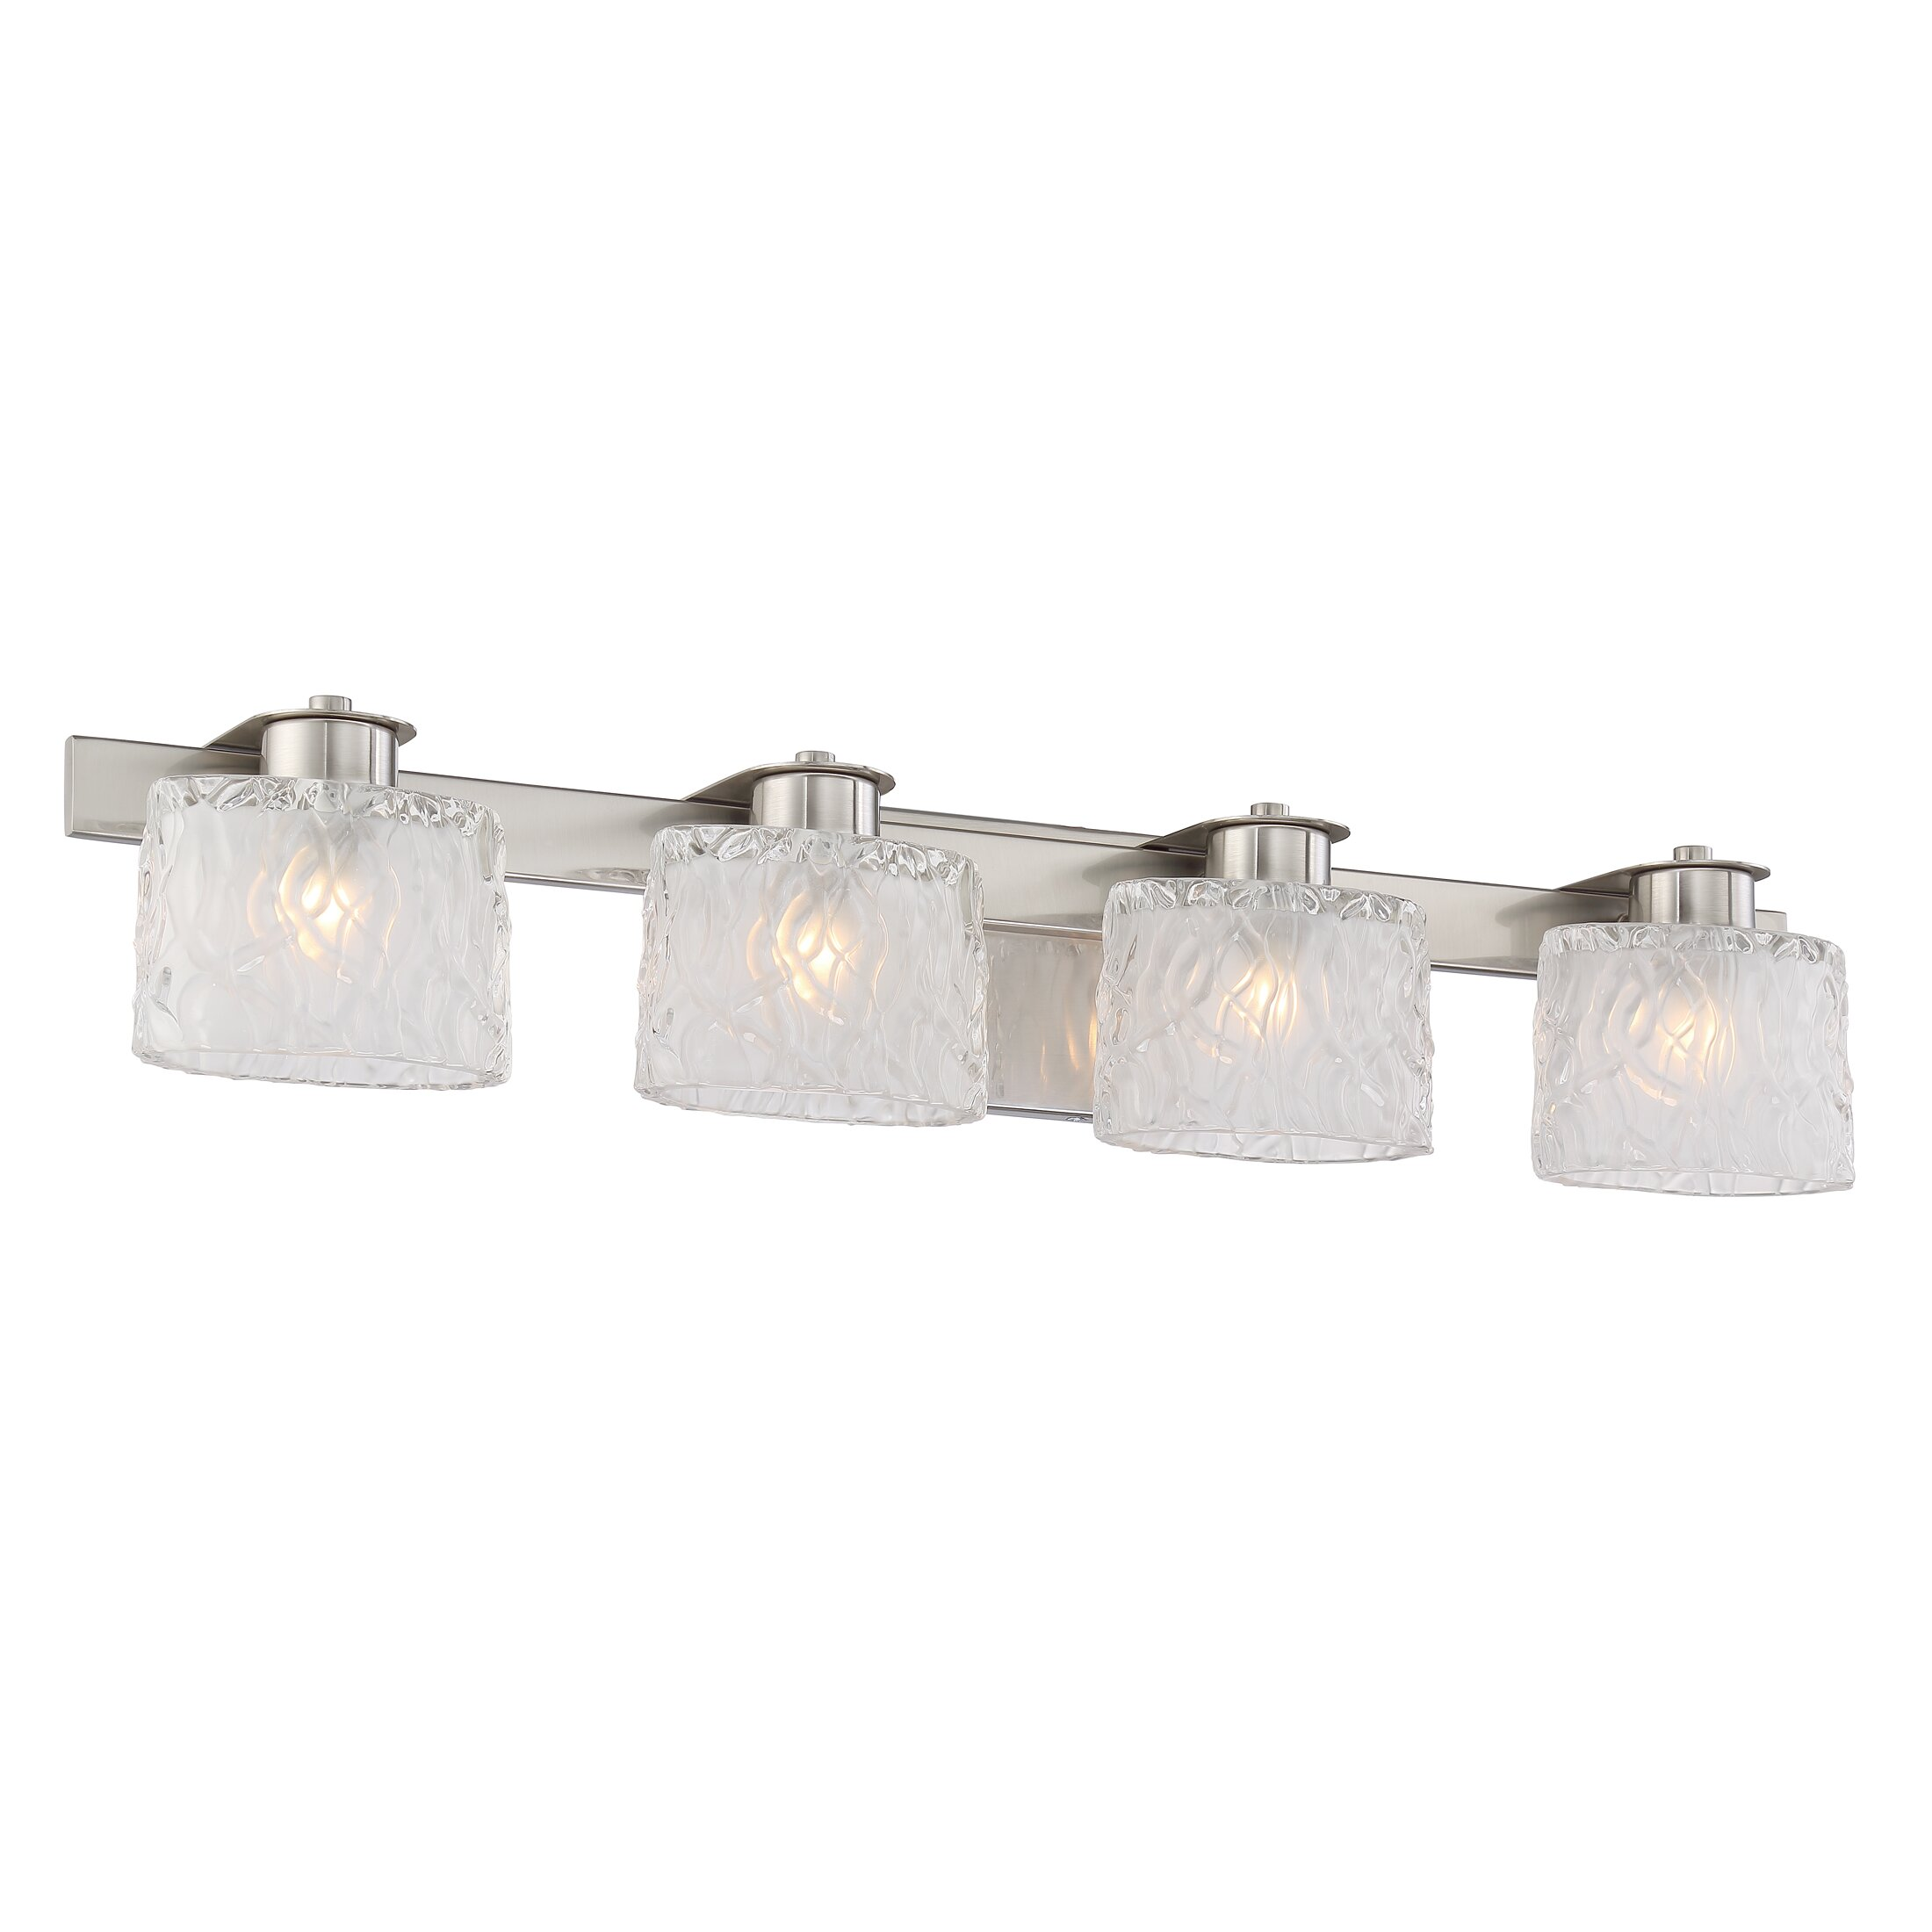 Quoizel Vanity Lights : Quoizel Seaview 4 Light Vanity light & Reviews Wayfair